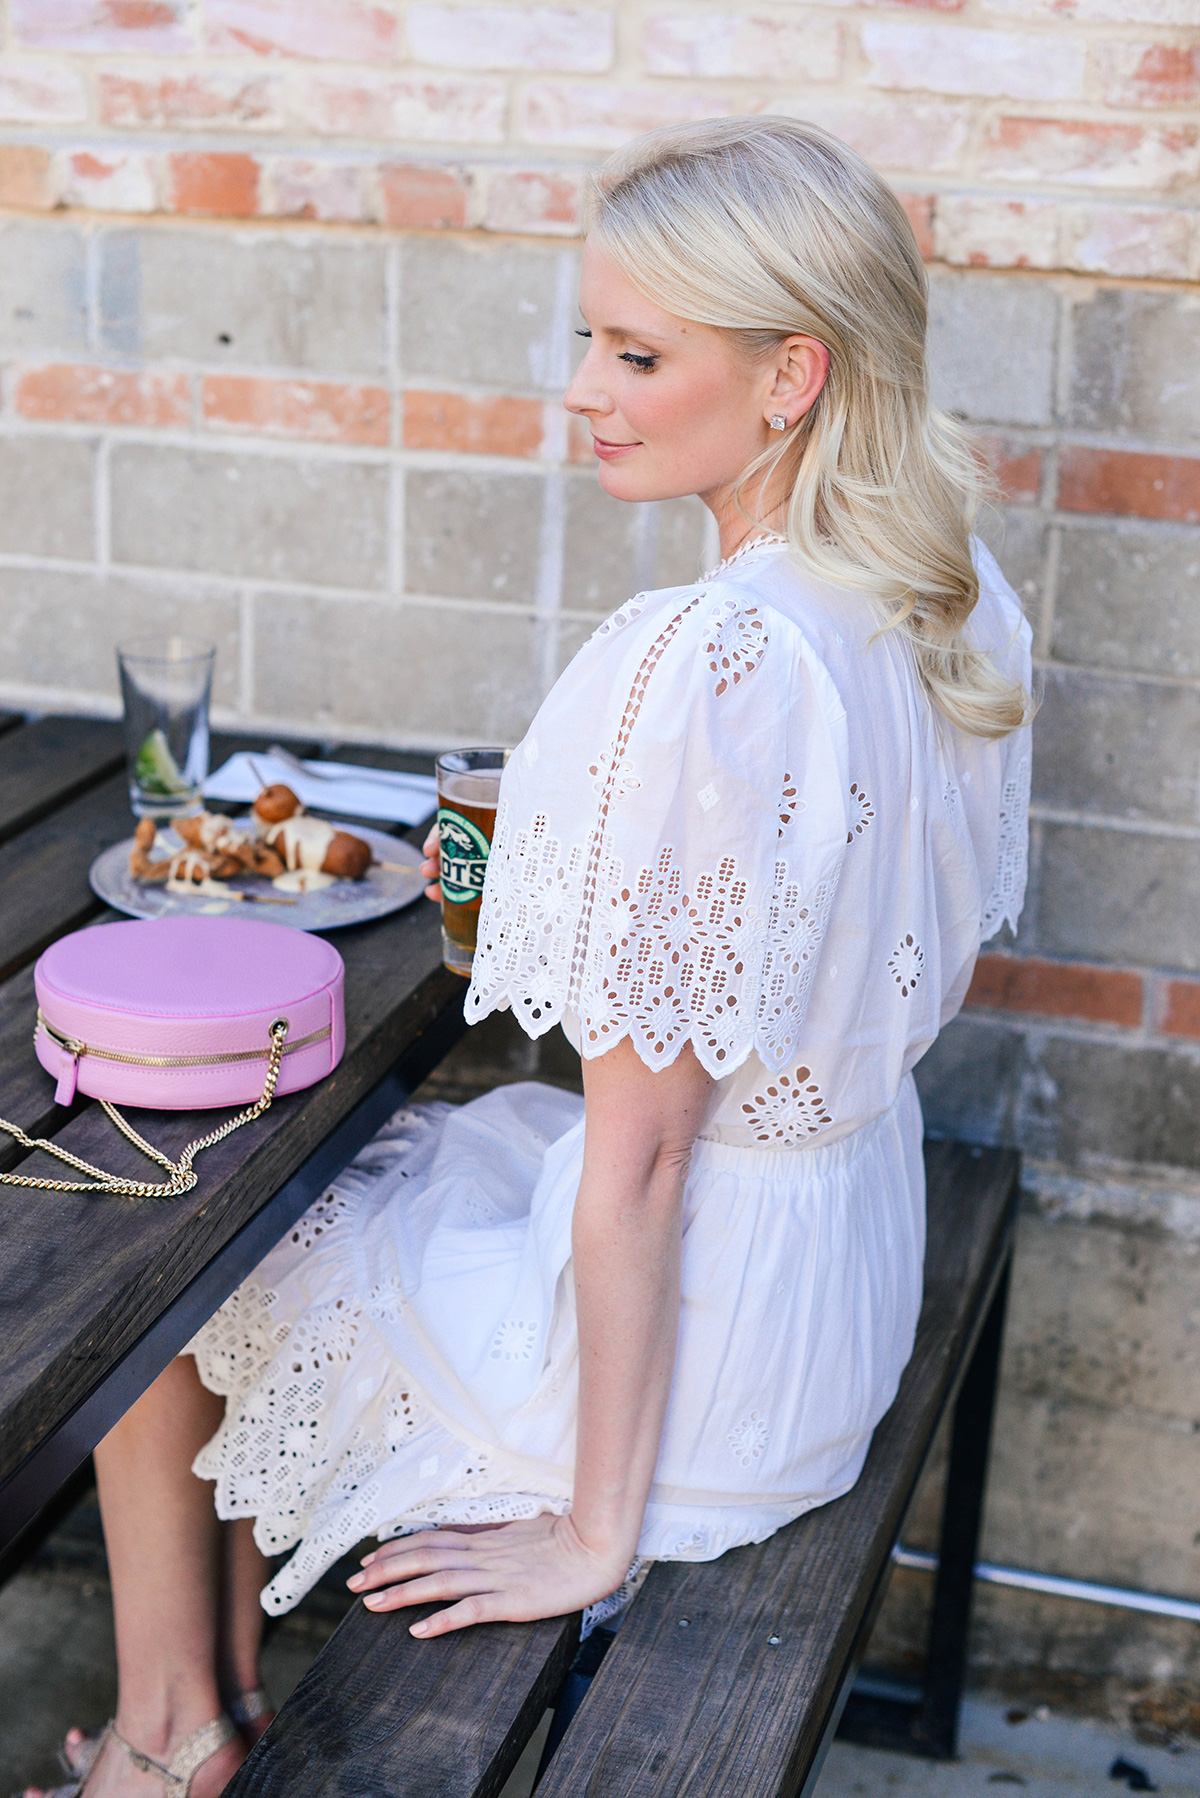 Ladylike Lace | The Style Scribe